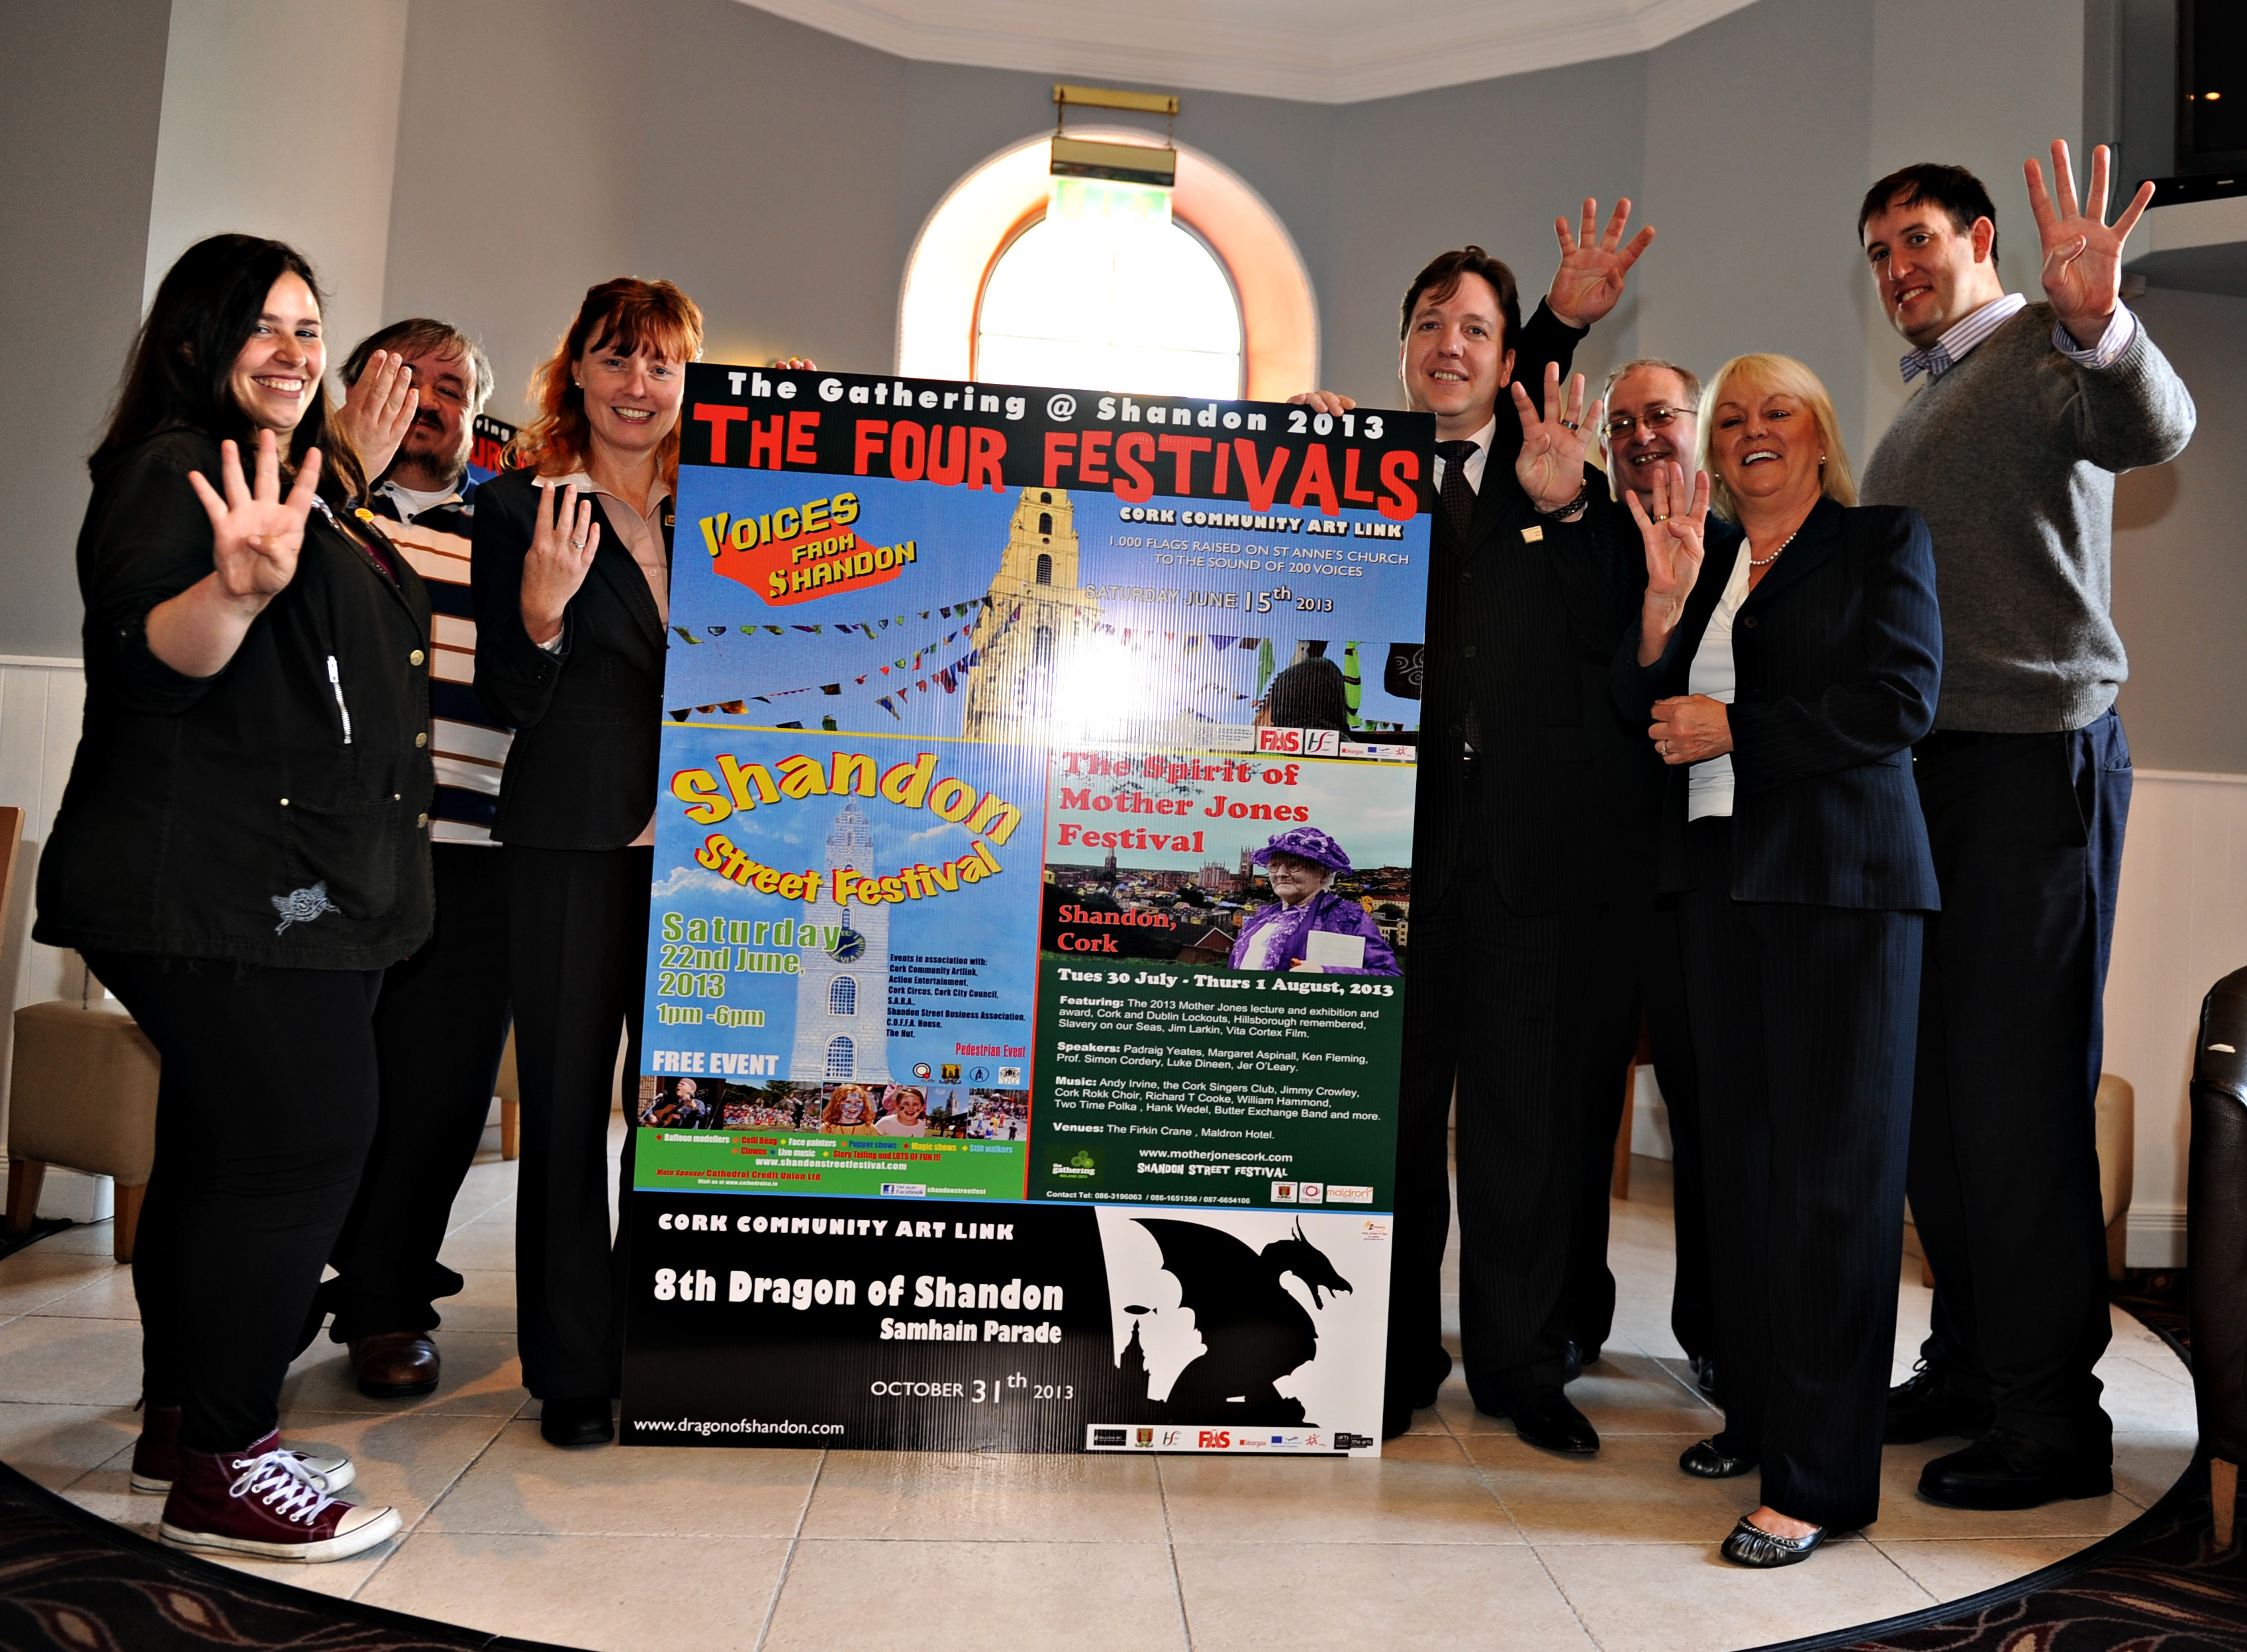 2013 mother jones cork launch of the four festivals of shandon yesterday 29 at the maldron hotel